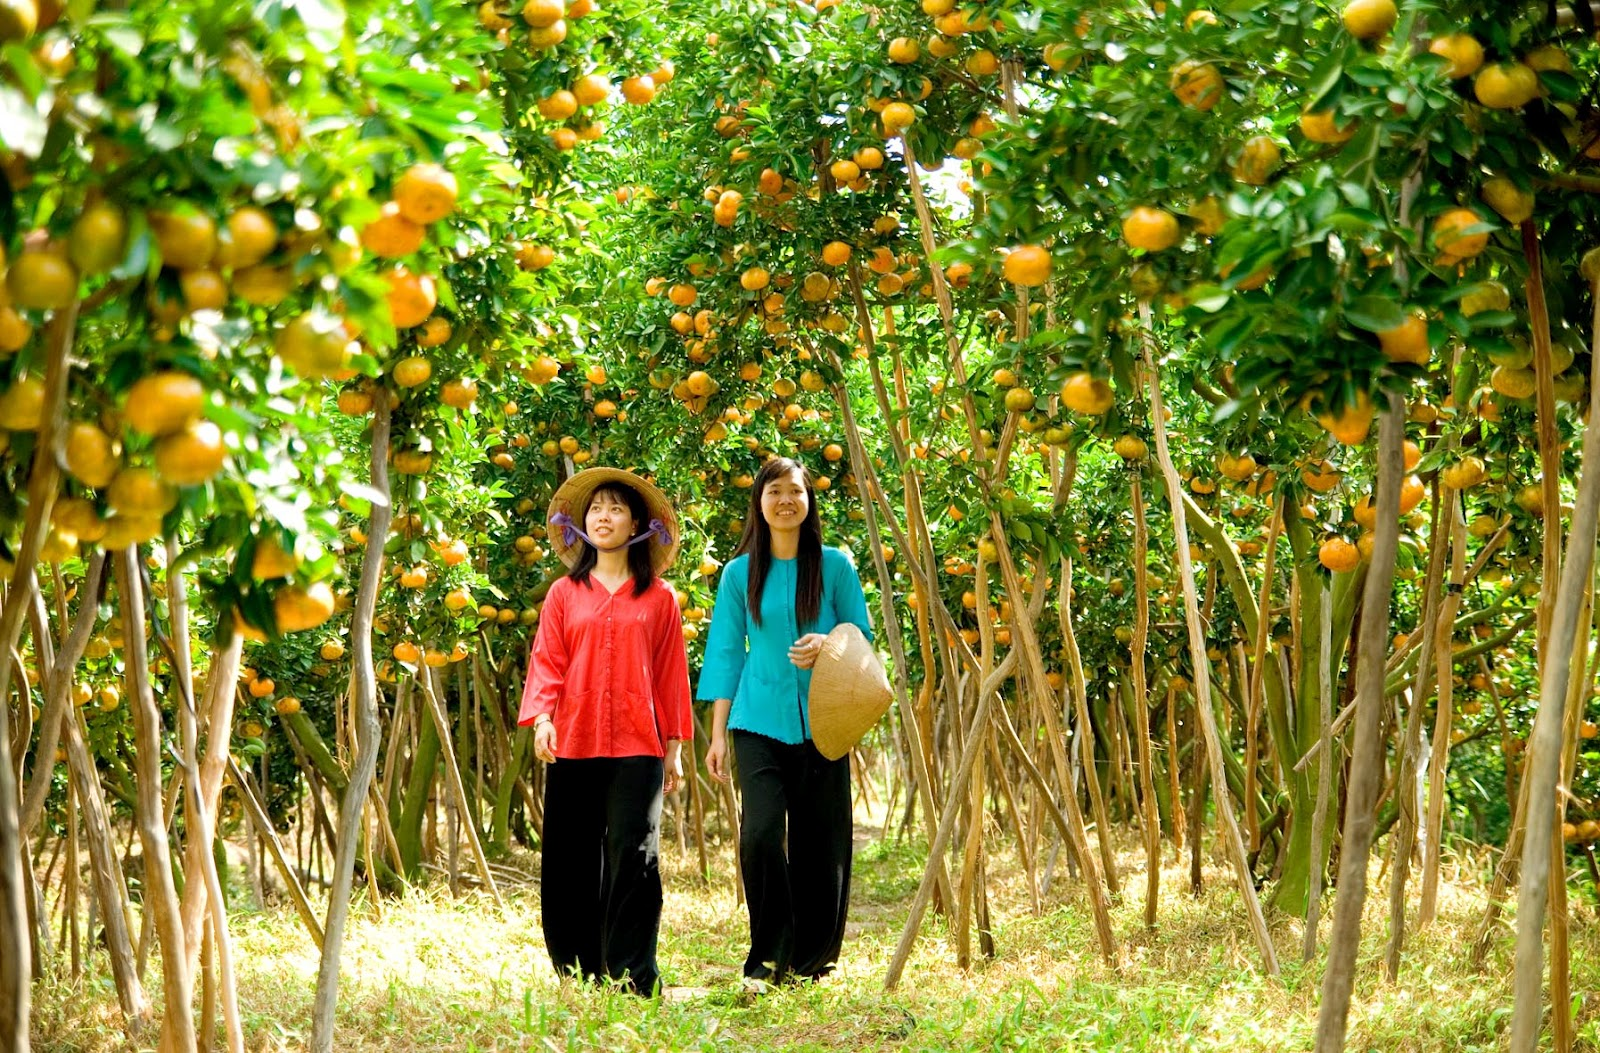 Fruit garden in Kien Giang province